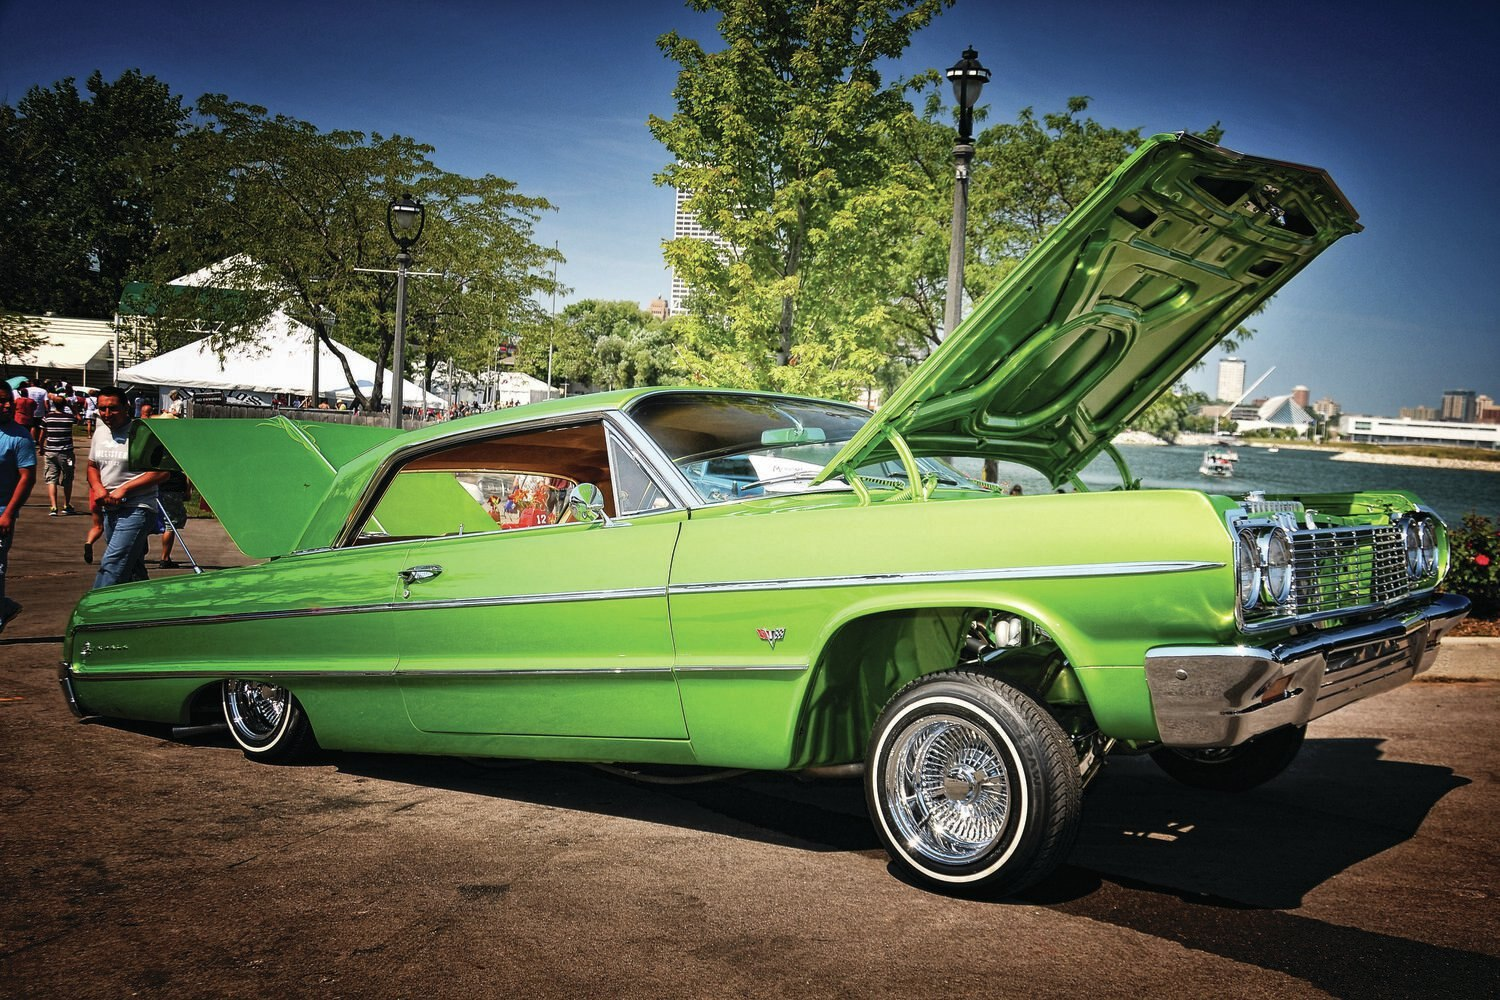 milwaukee-mexican-fiesta-2013-lime-green-chevrolet-impala1